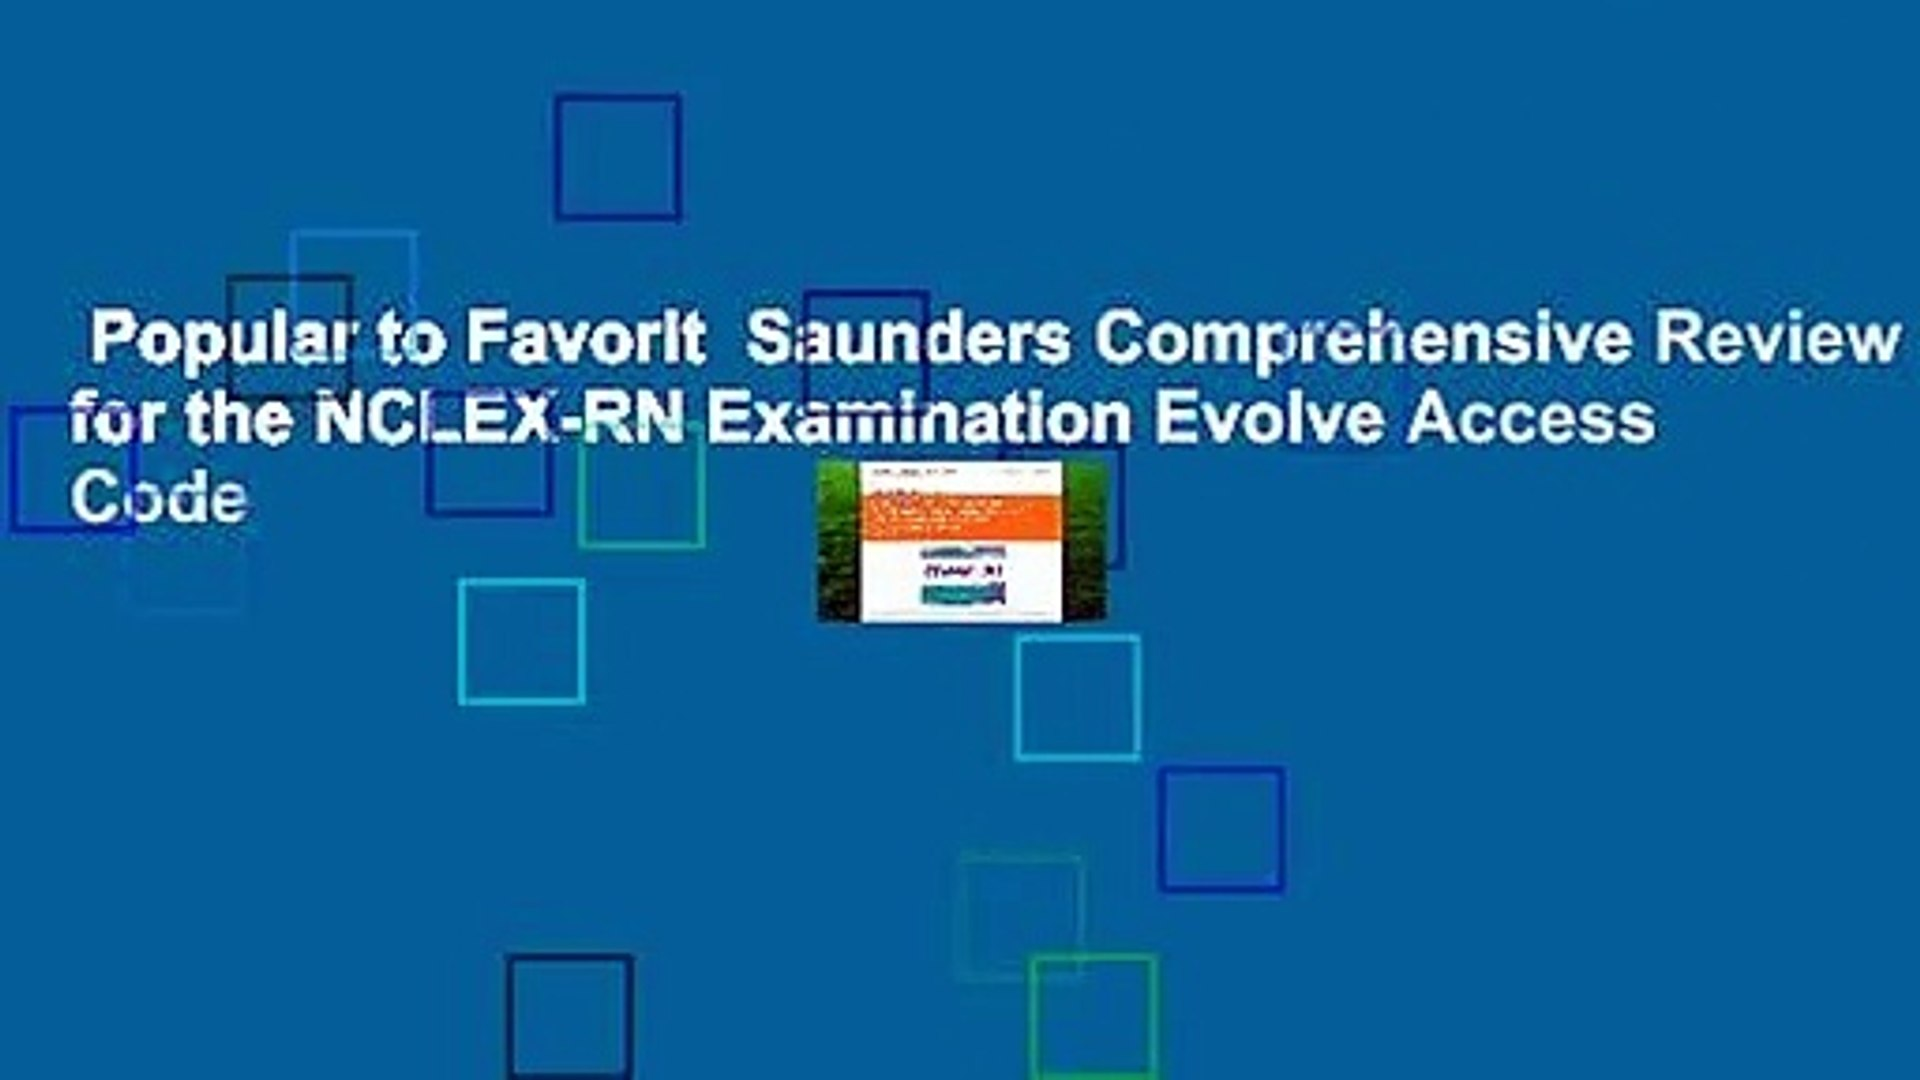 Popular to Favorit Saunders Comprehensive Review for the NCLEX-RN  Examination Evolve Access Code